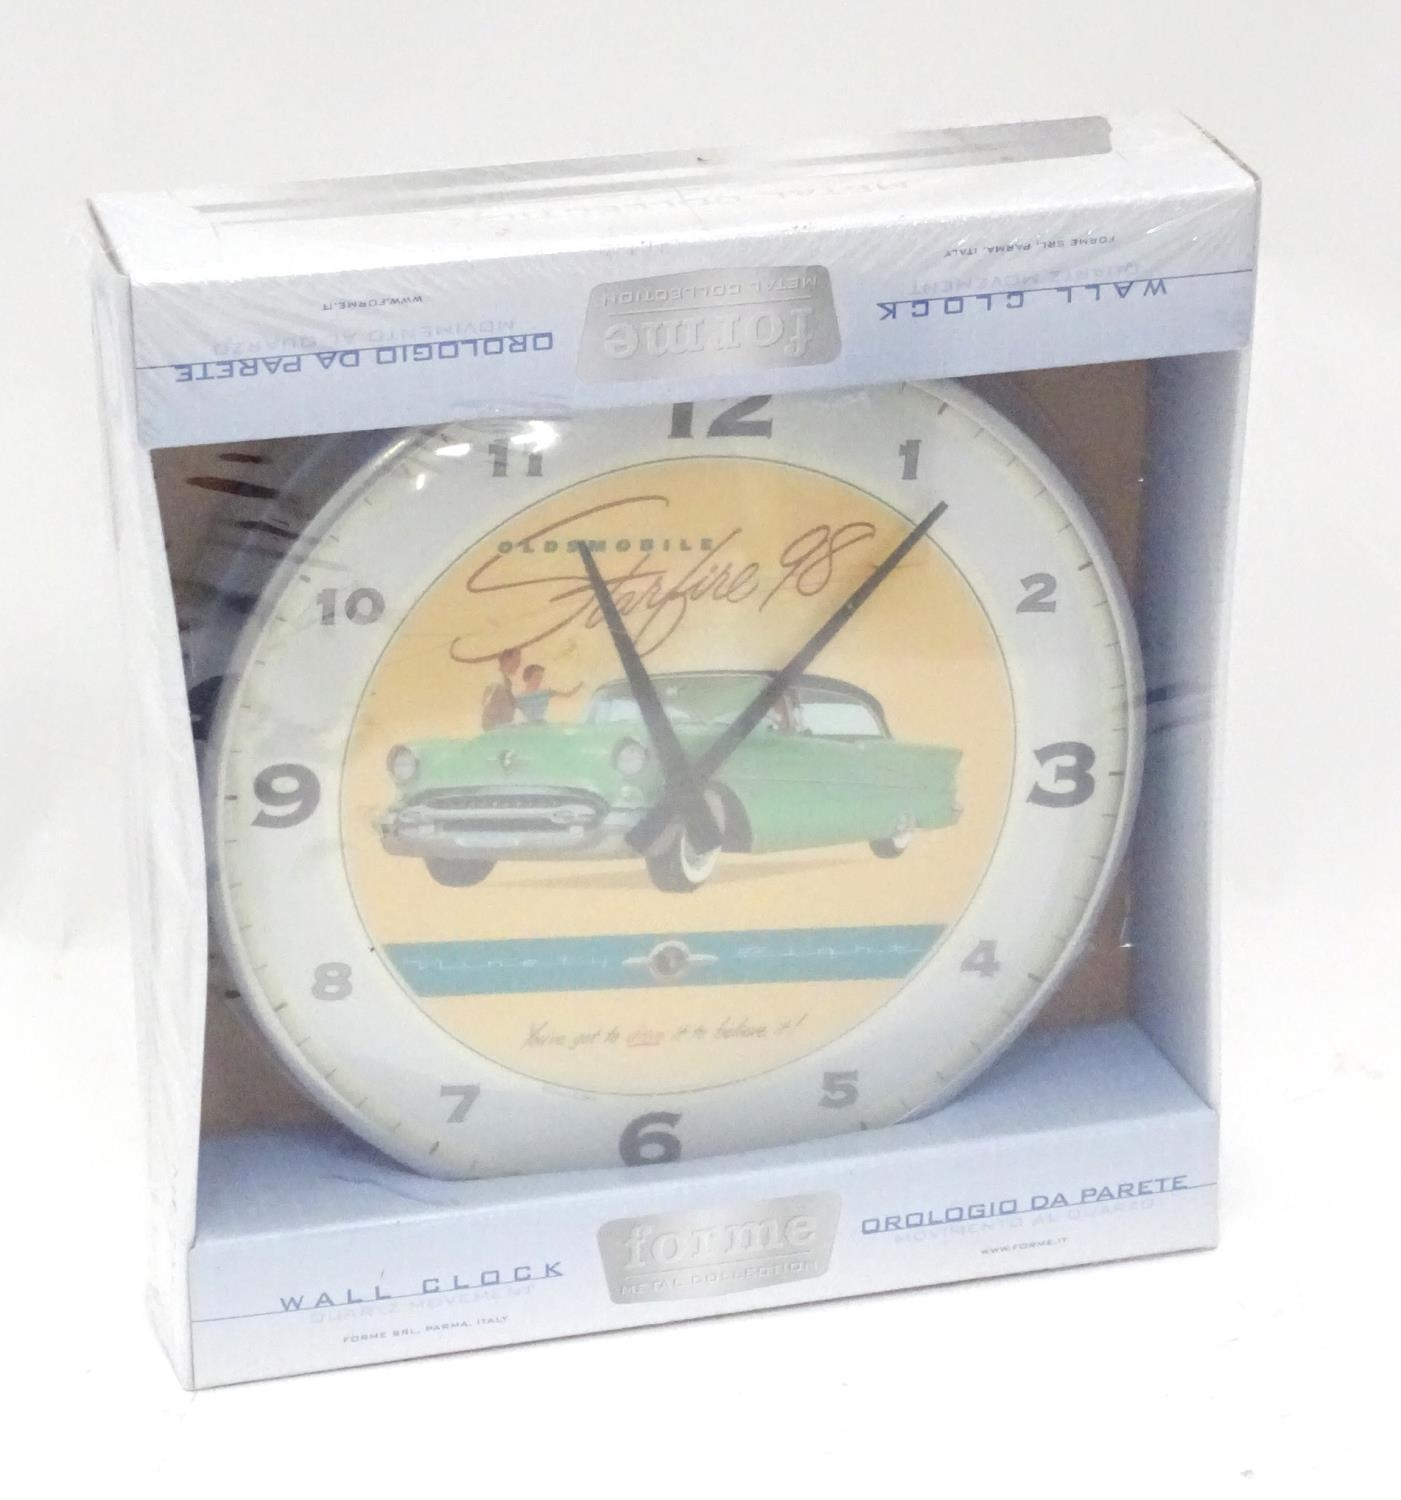 An American motoring wall clock decorated with the car / vehicle Oldsmobile Starfire '98 Please Note